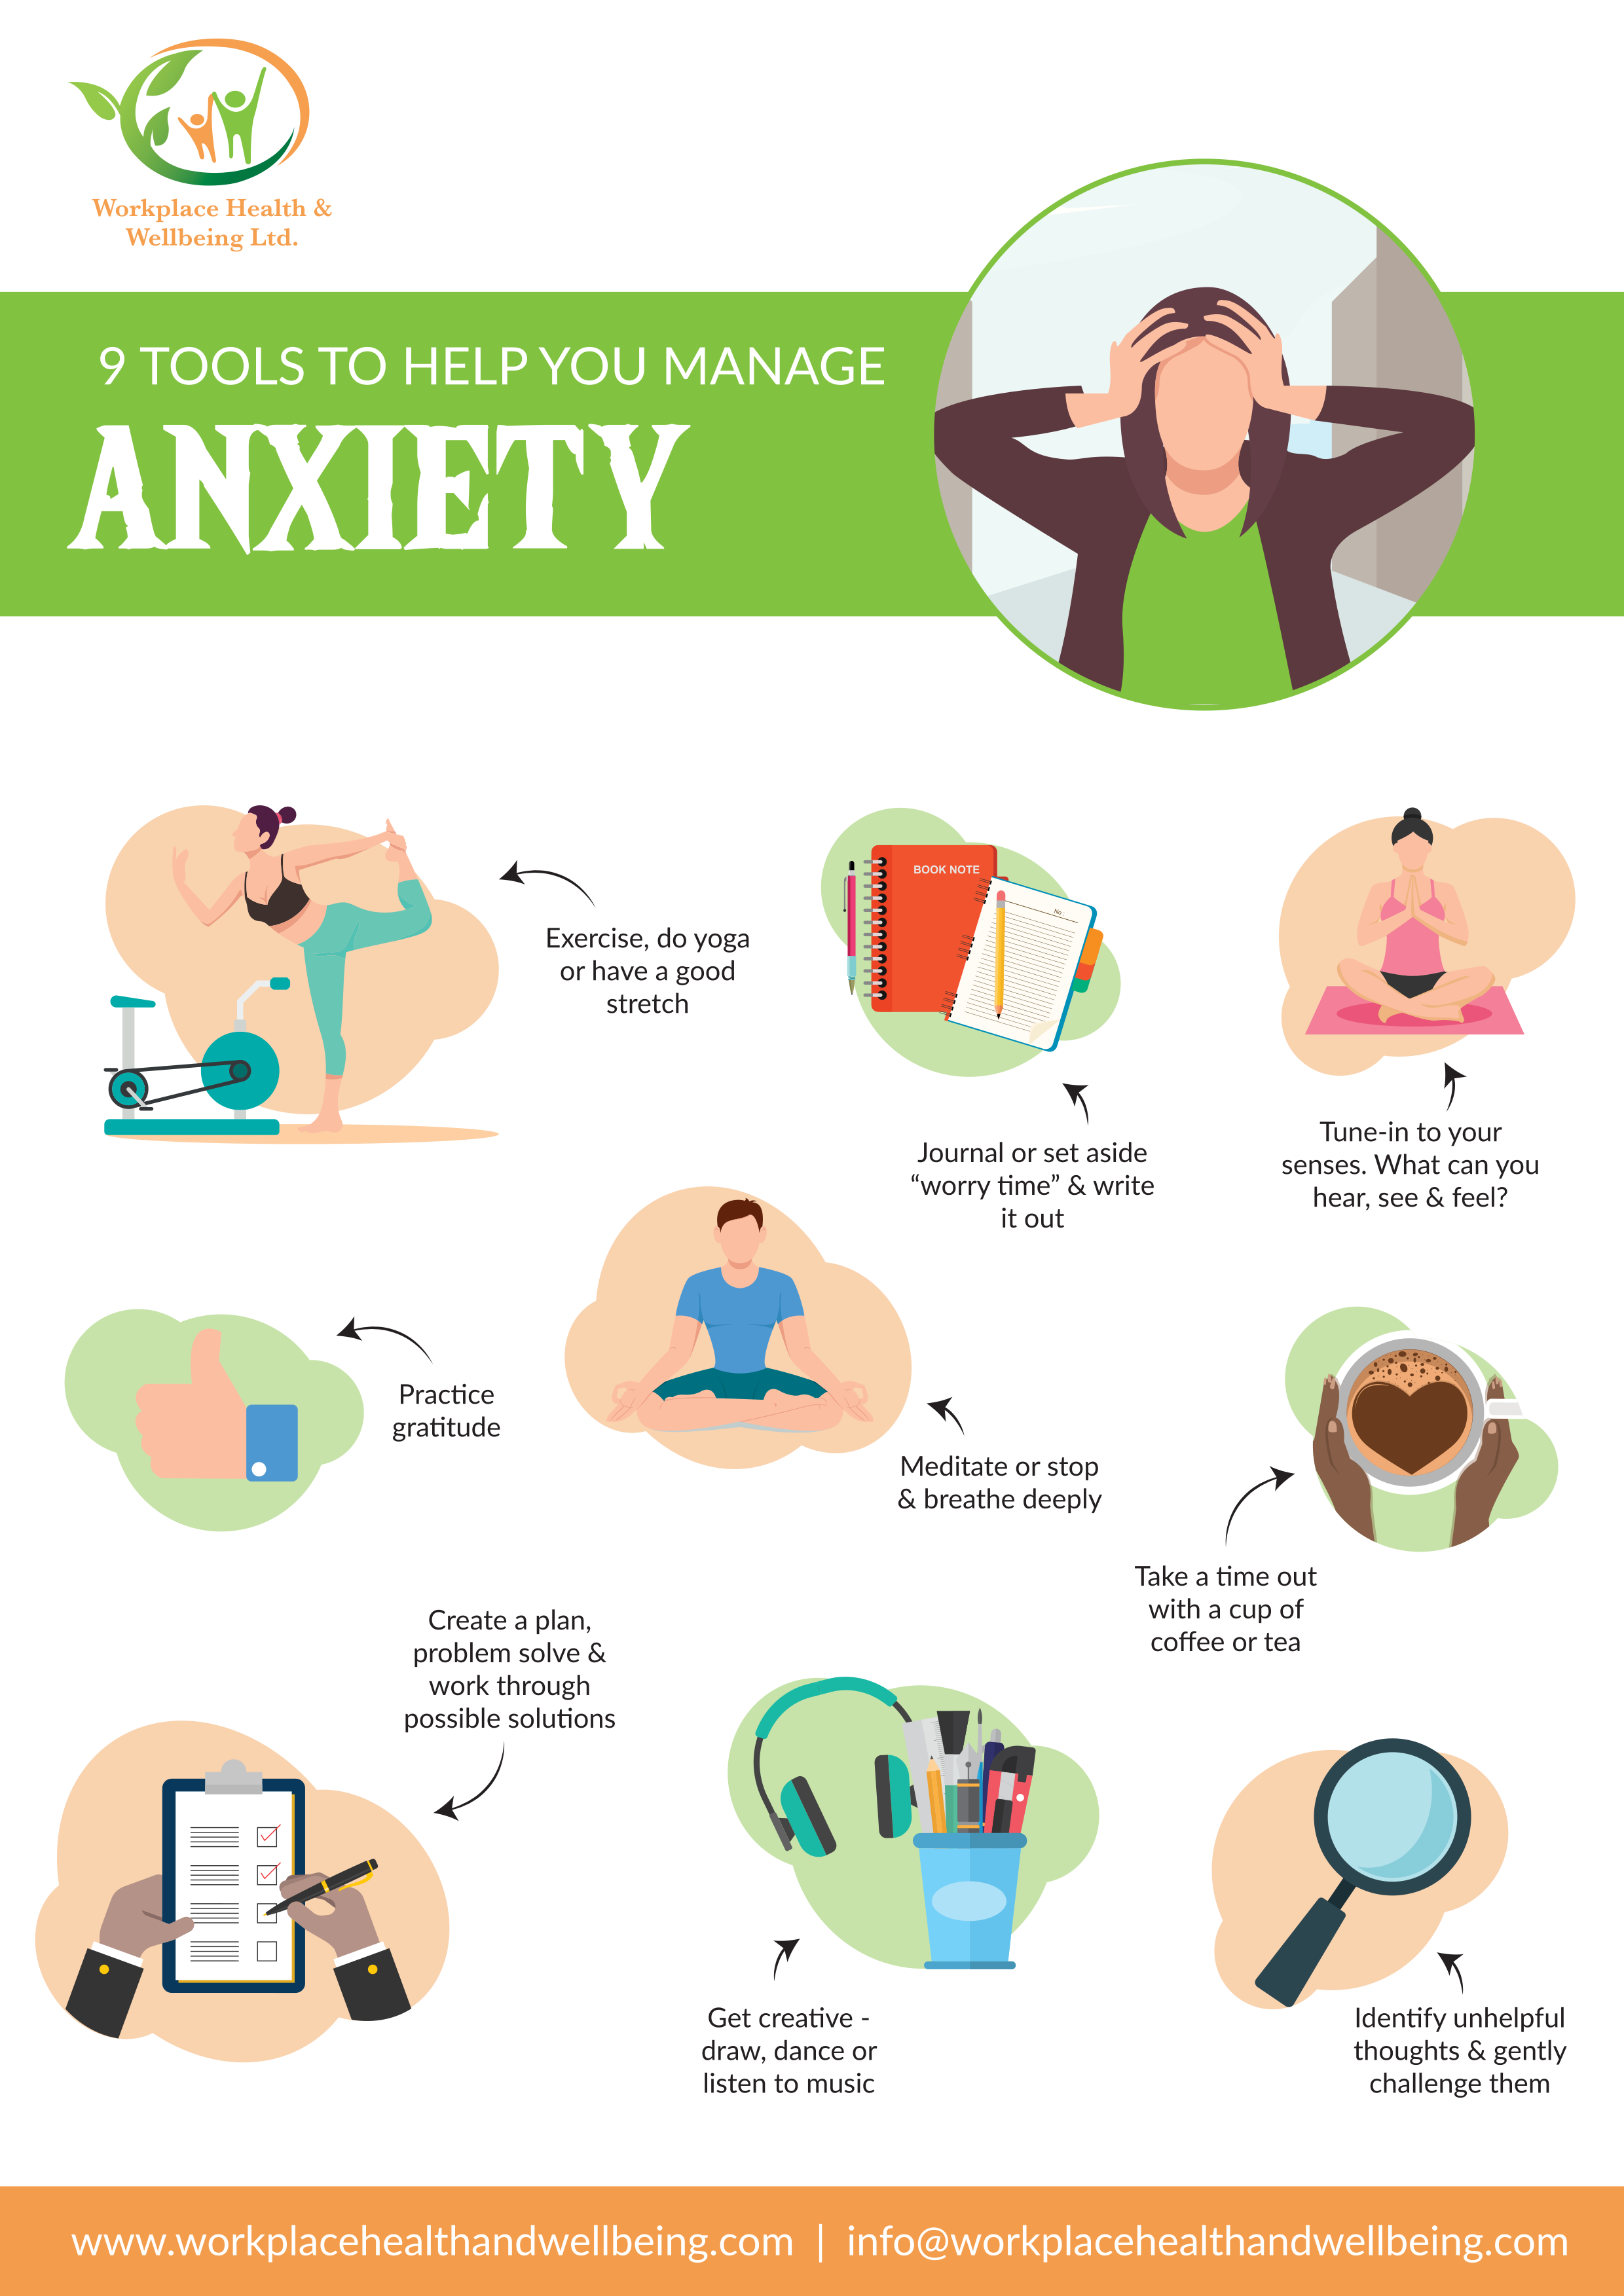 an infographic showing 9 different steps to help relieve anxiety